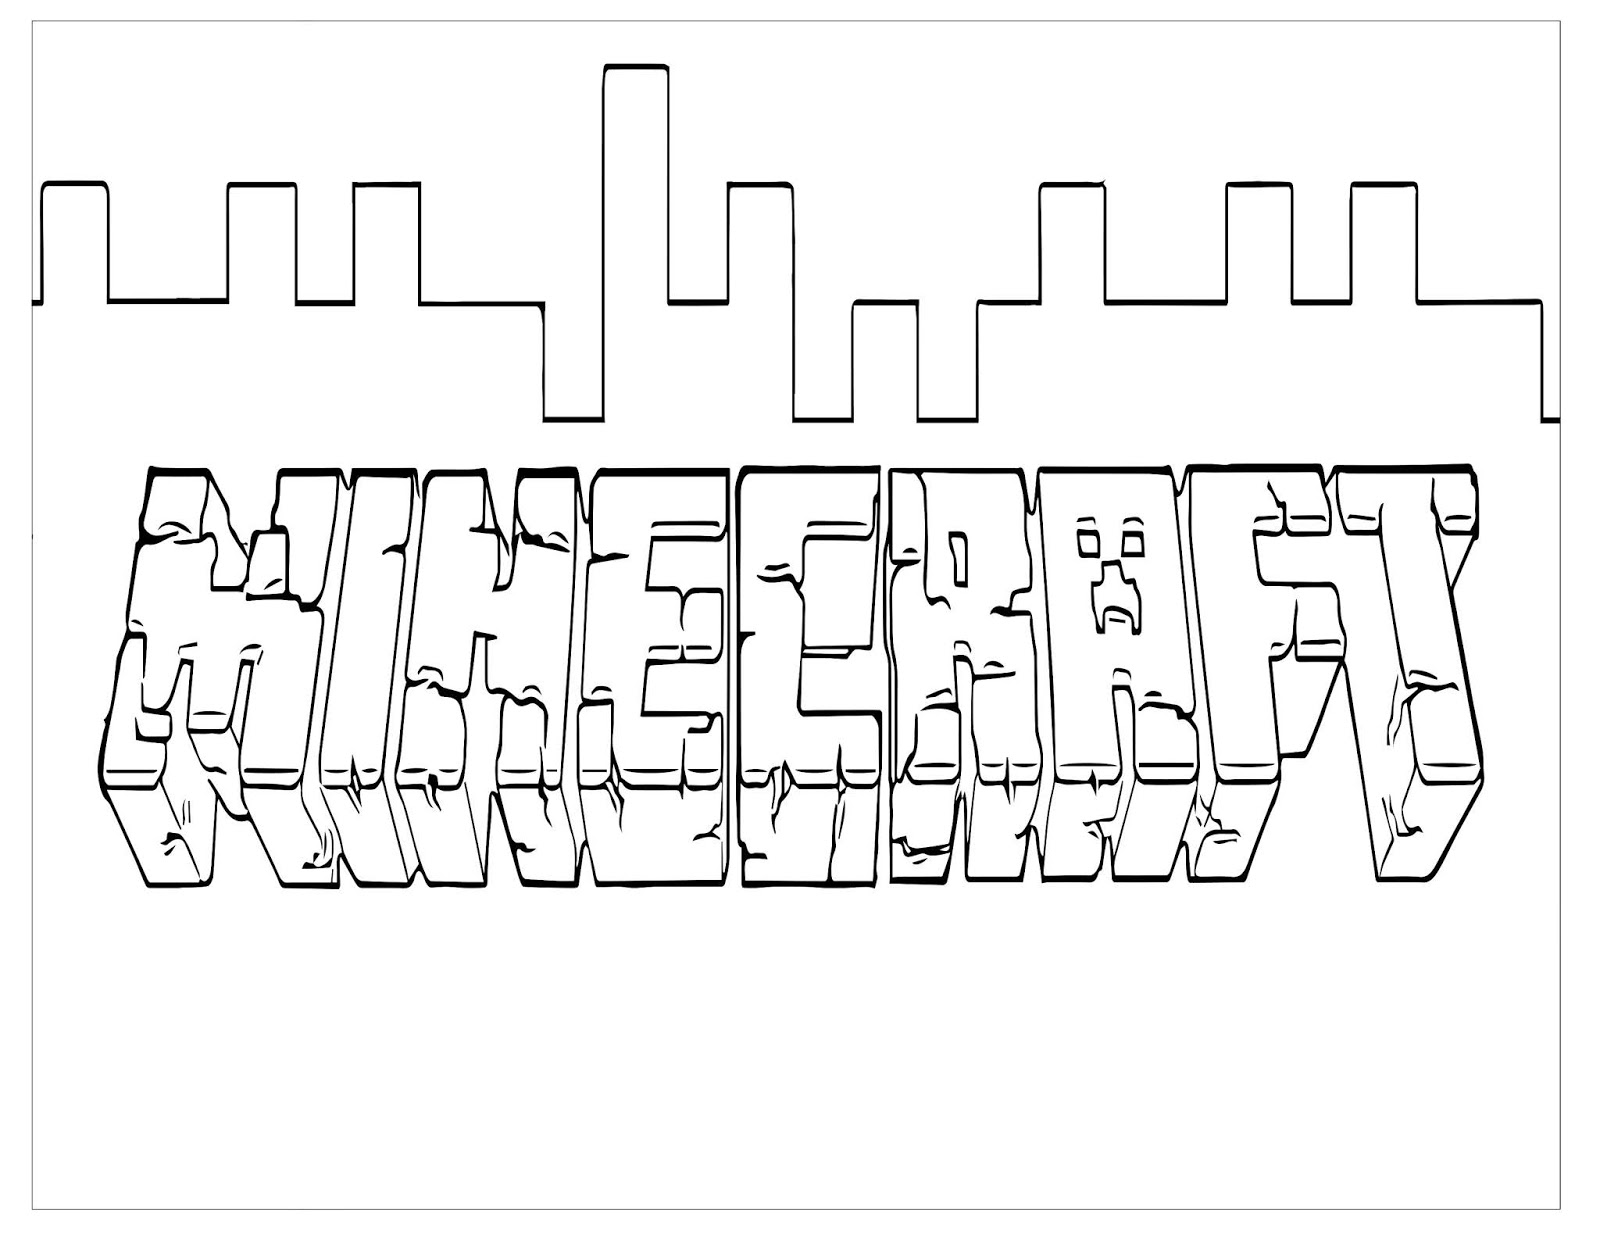 minecraft logo coloring my cup overflows 2018 logo coloring minecraft